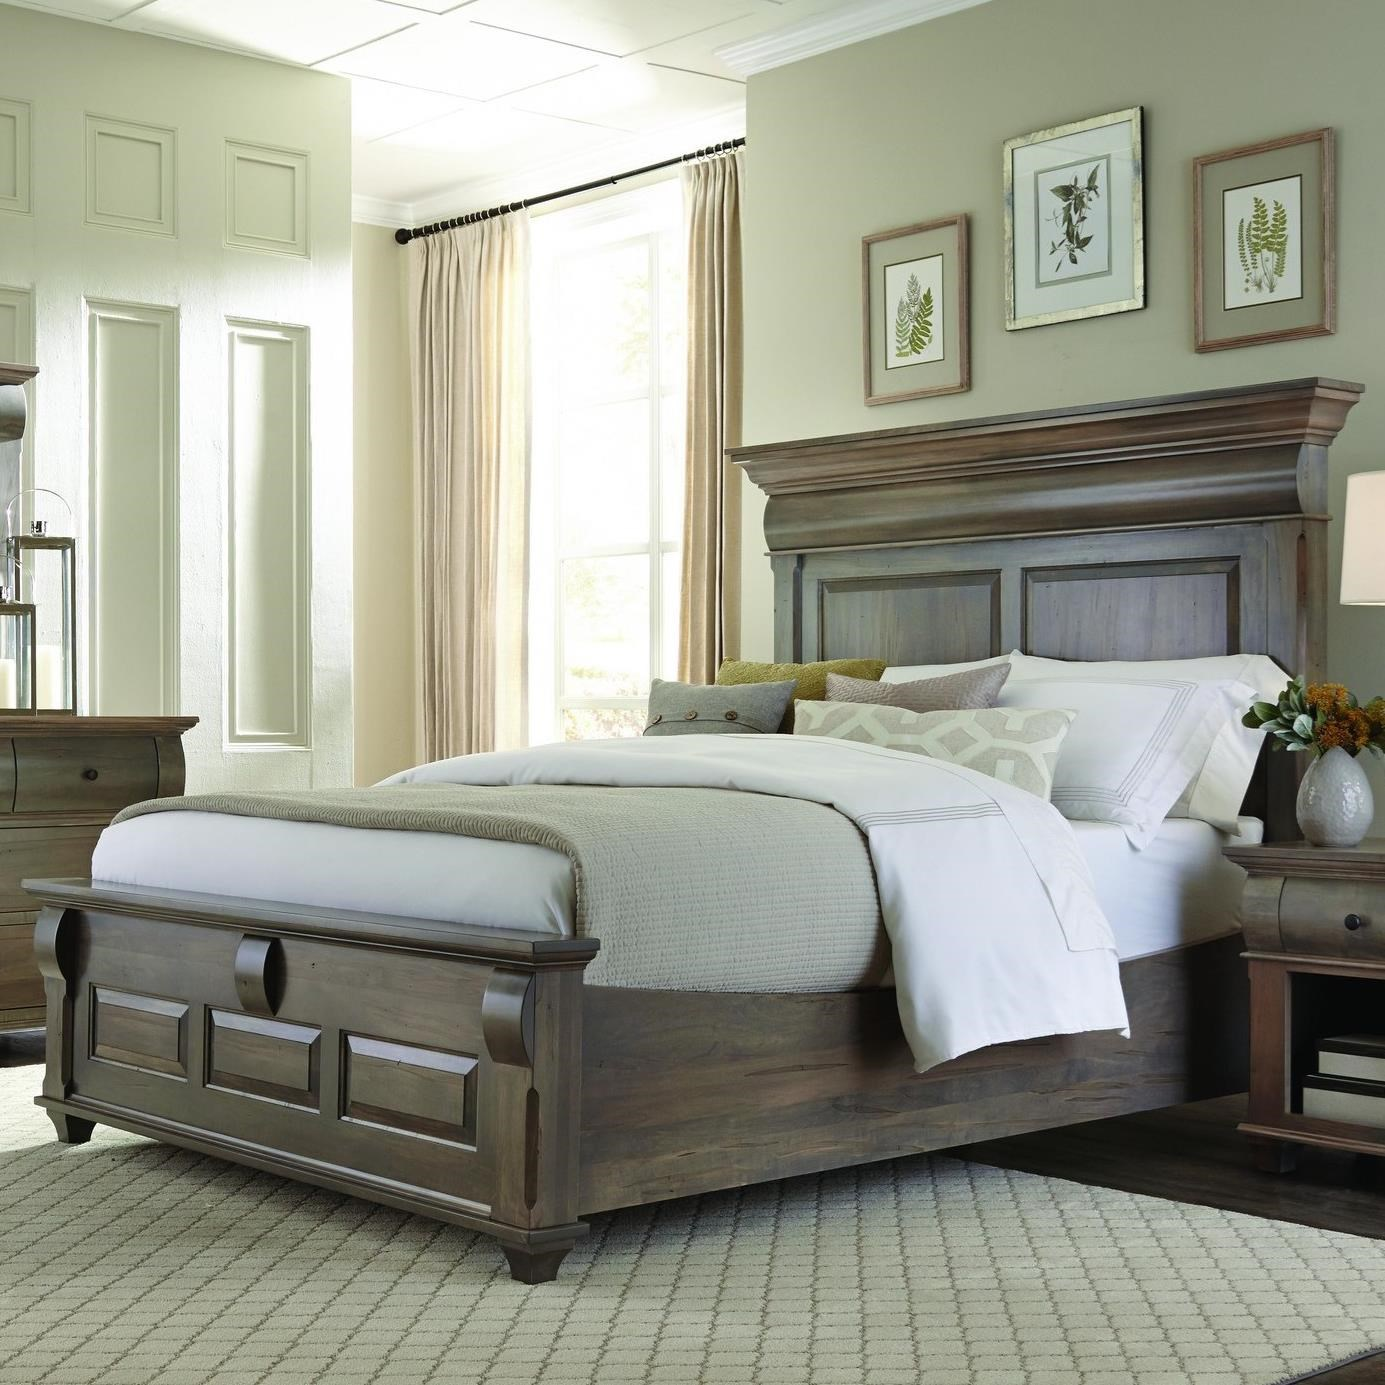 Bartletts Island King Panel Bed  by Palettes at Virginia Furniture Market